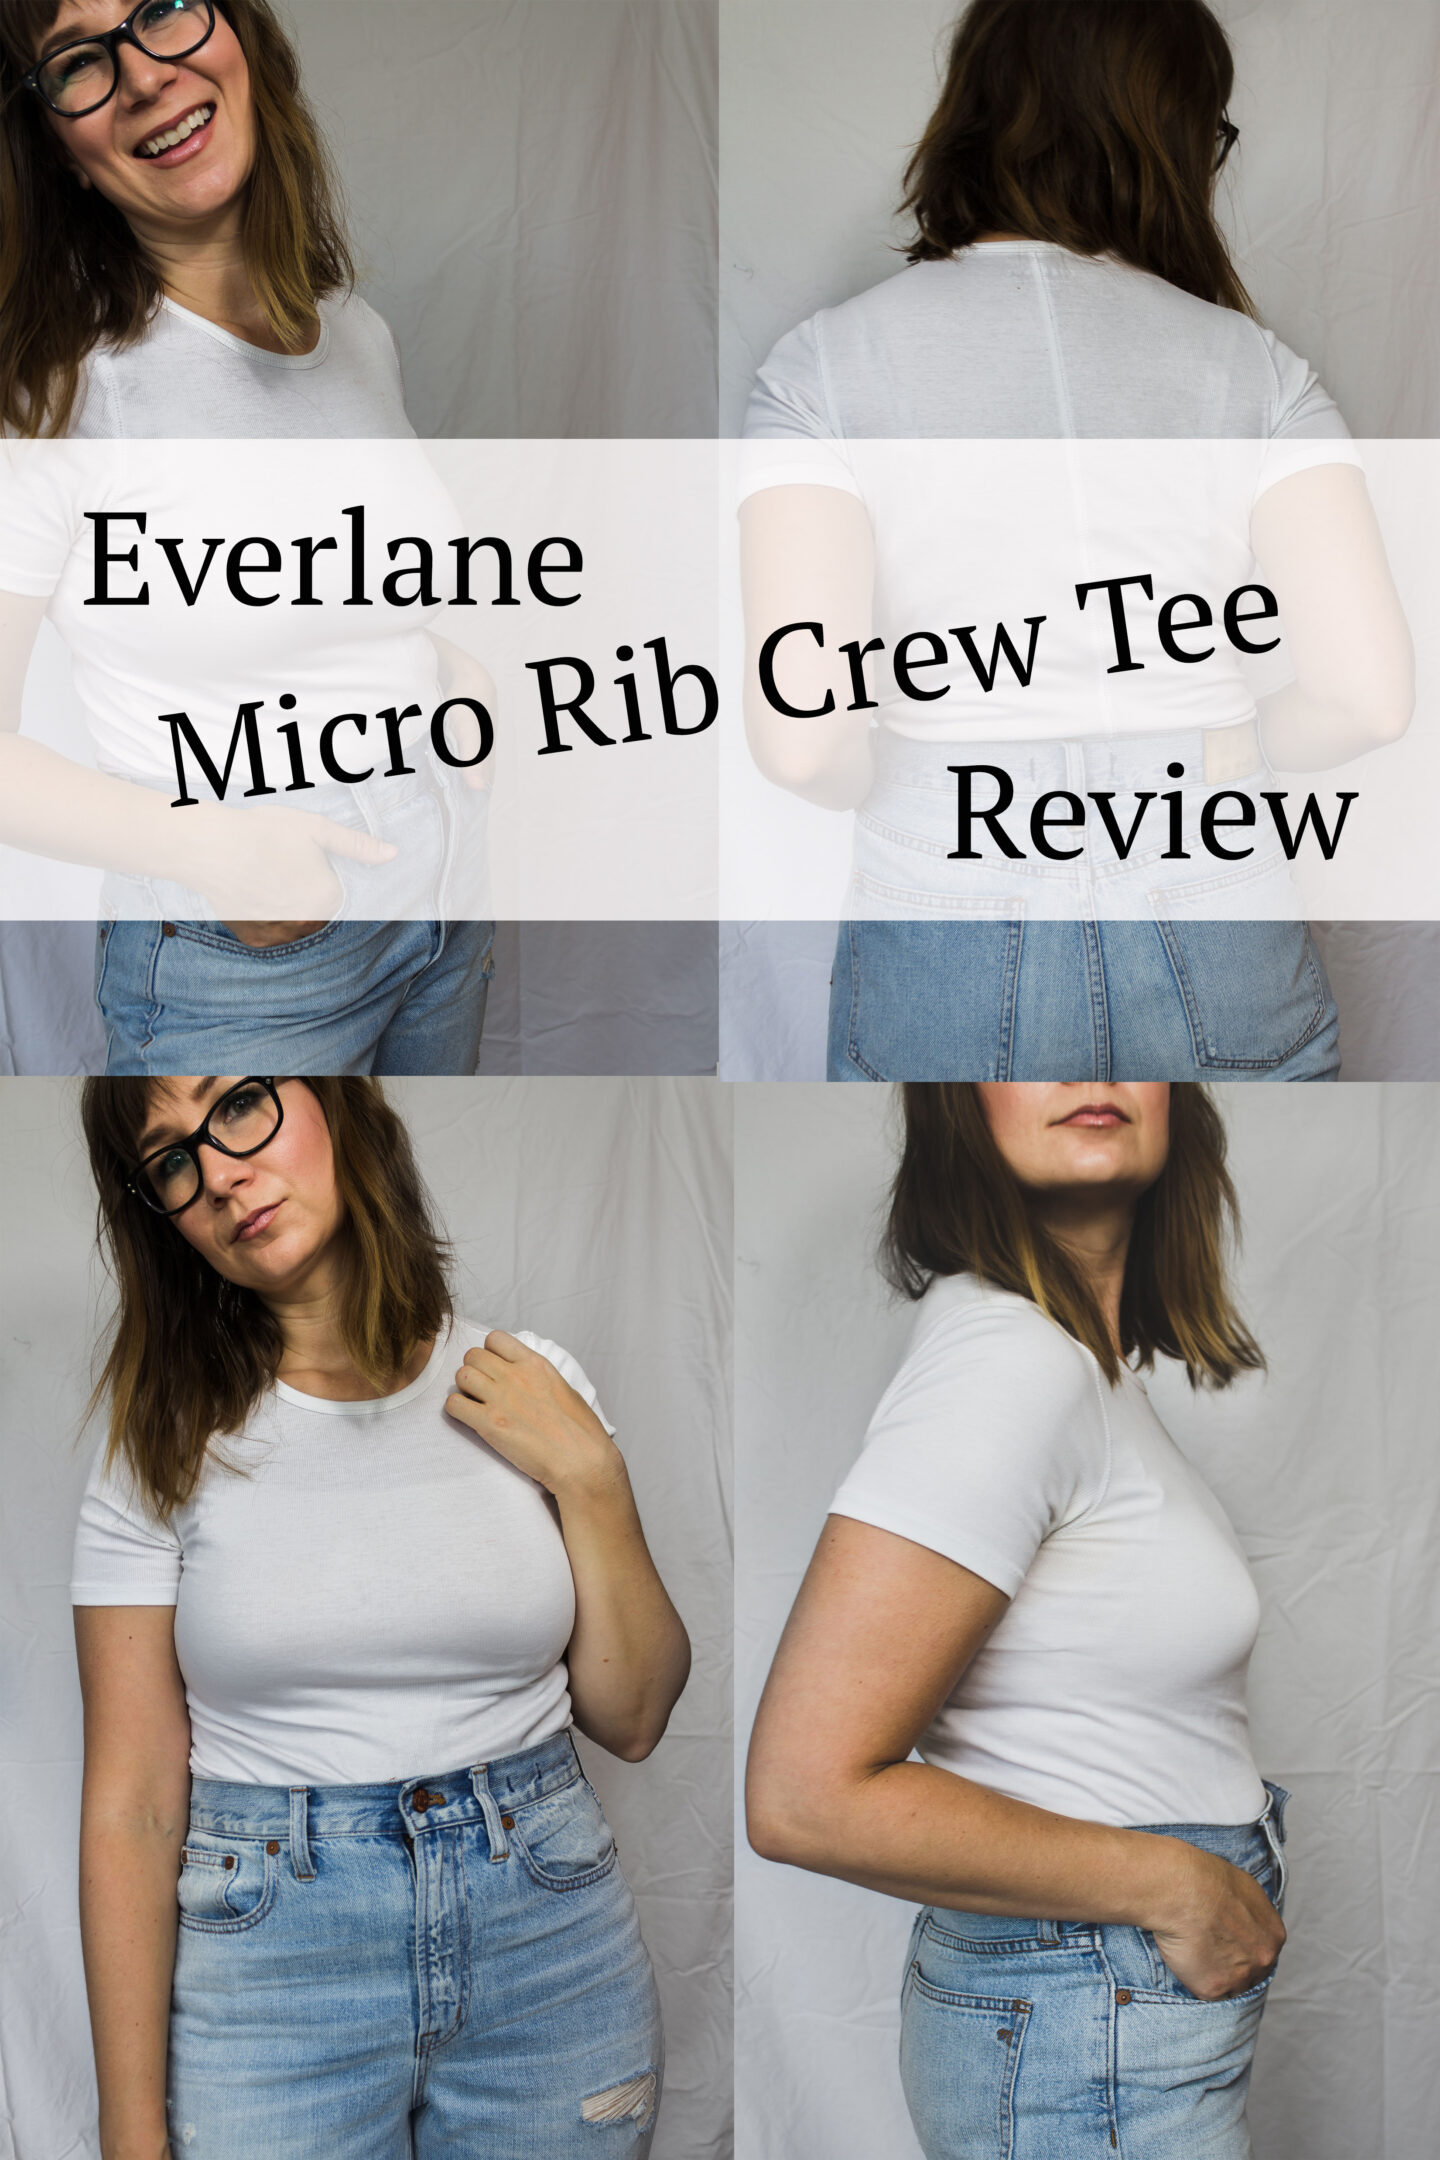 Everlane Micro Rib Crew Tee Review: Includes Video